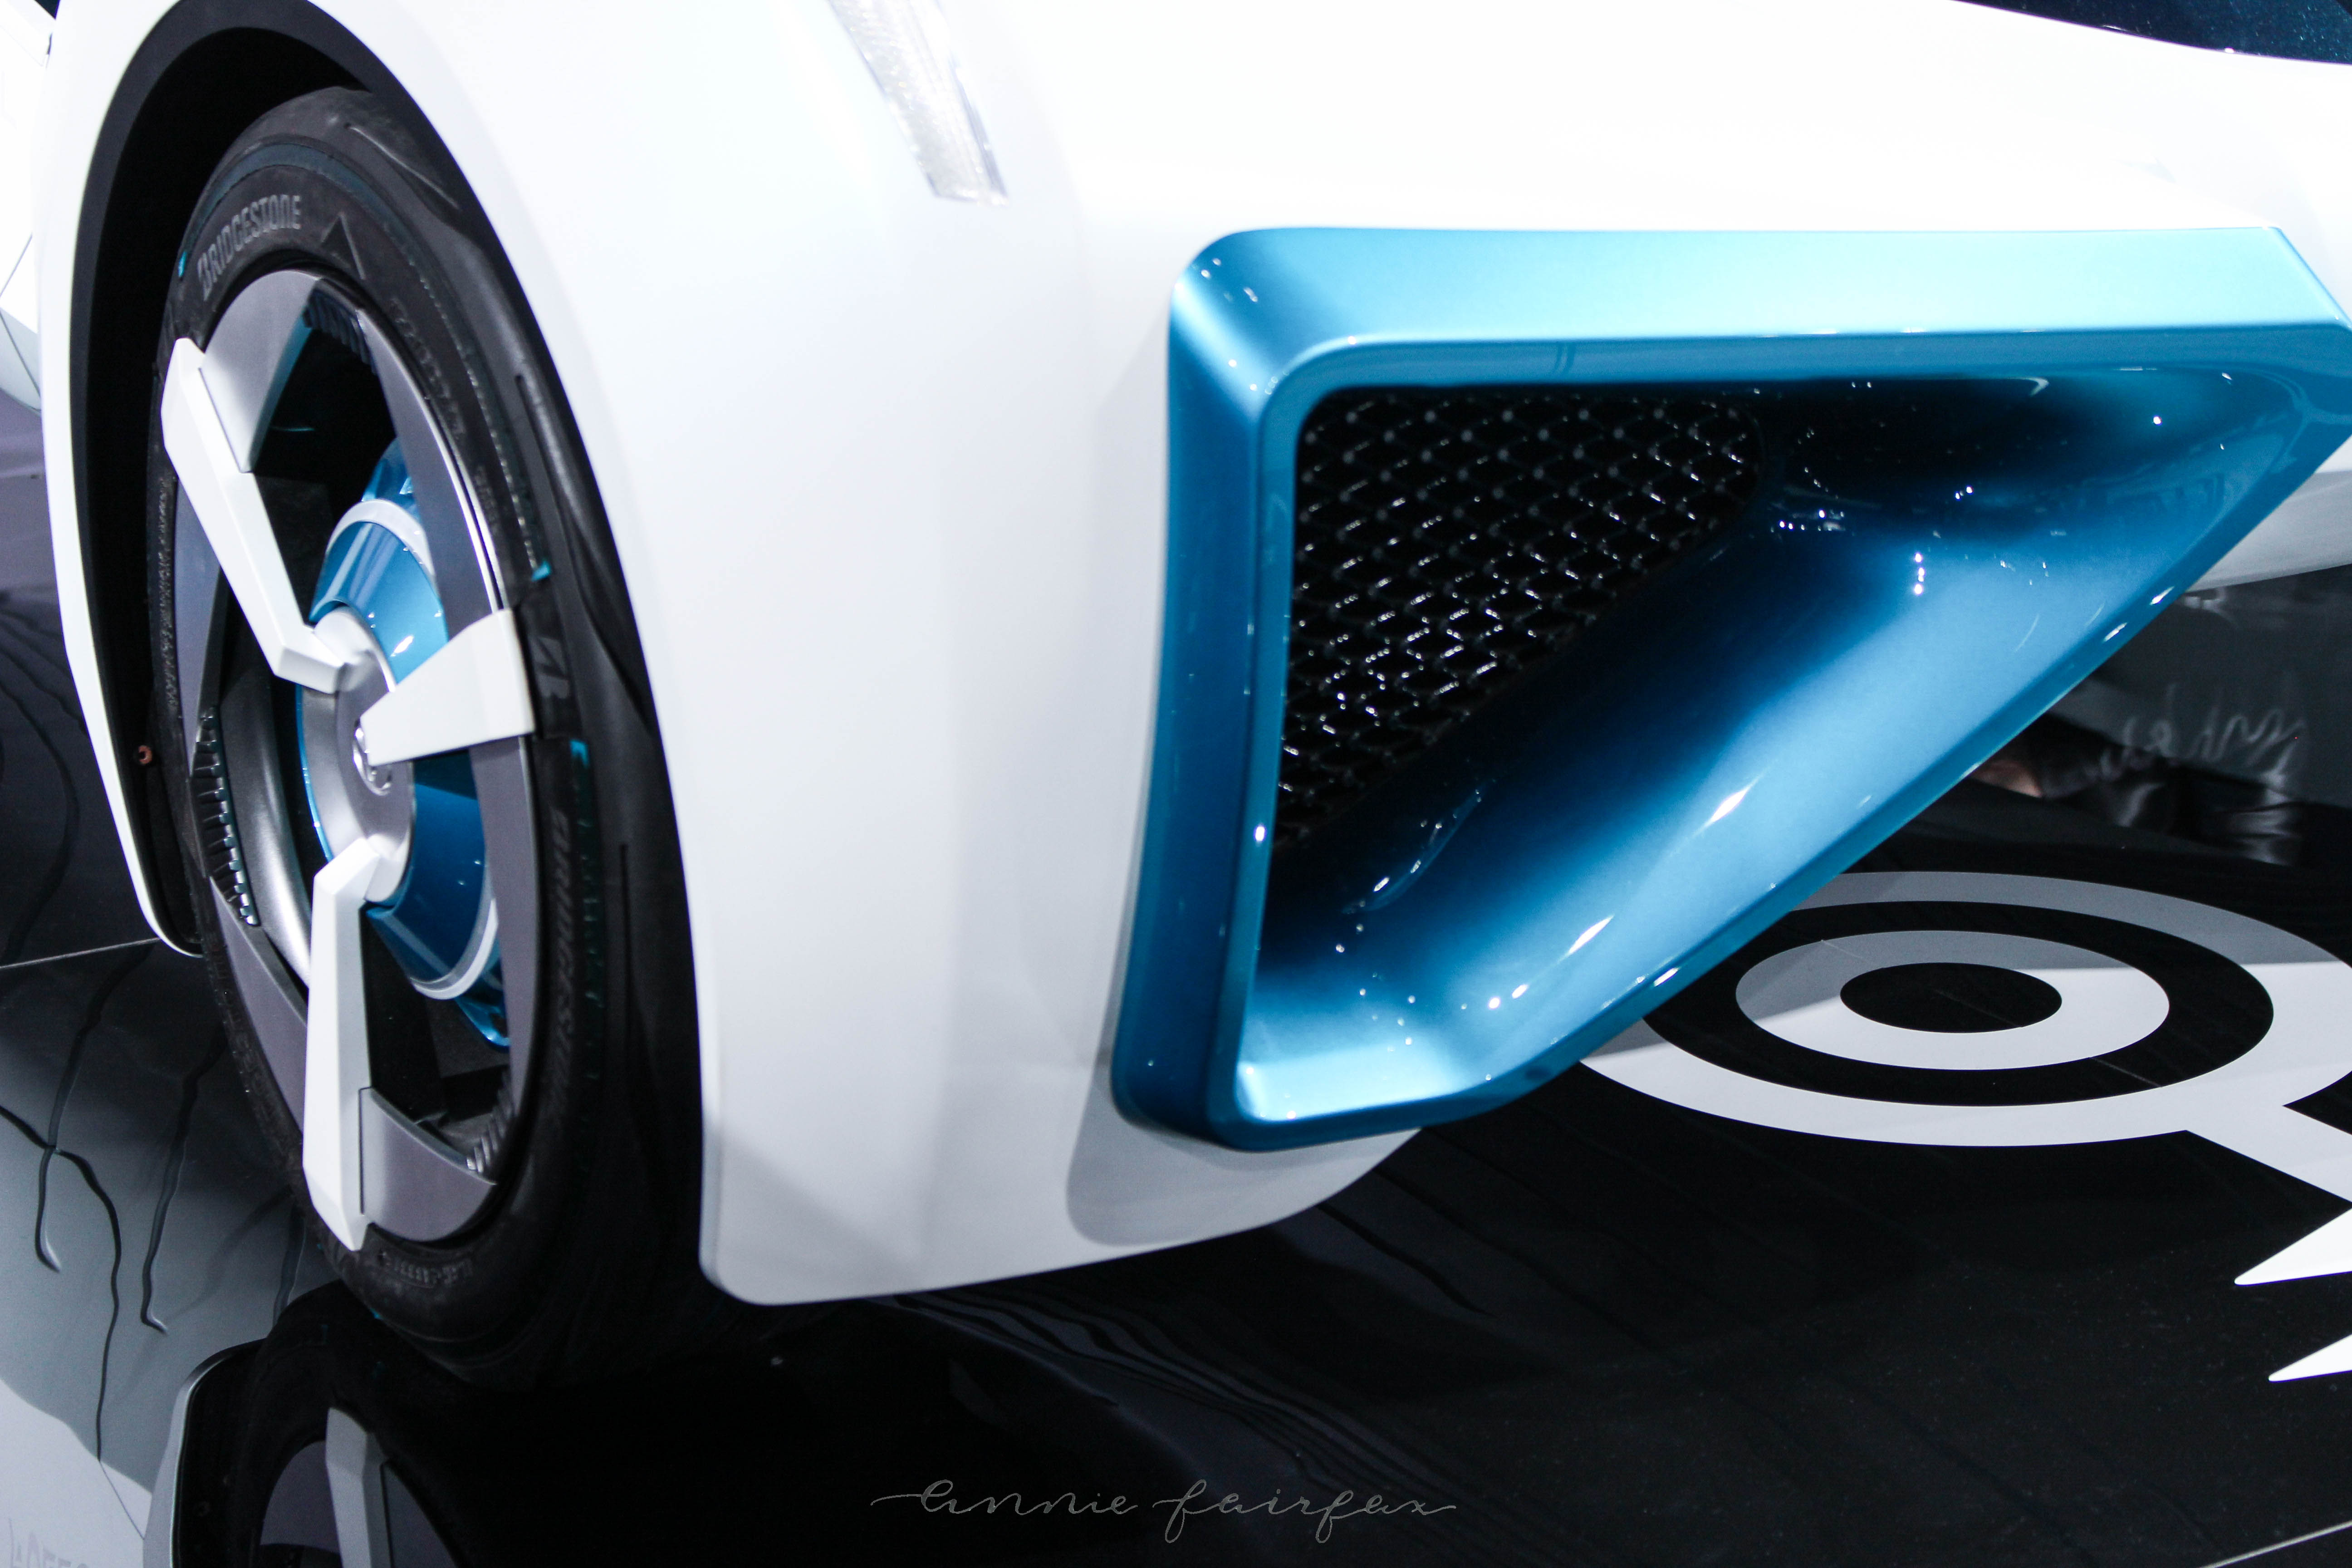 Toyota Concept Car Fuel Cell NAIAS Annie Fairfax https://anniewearsit.com/